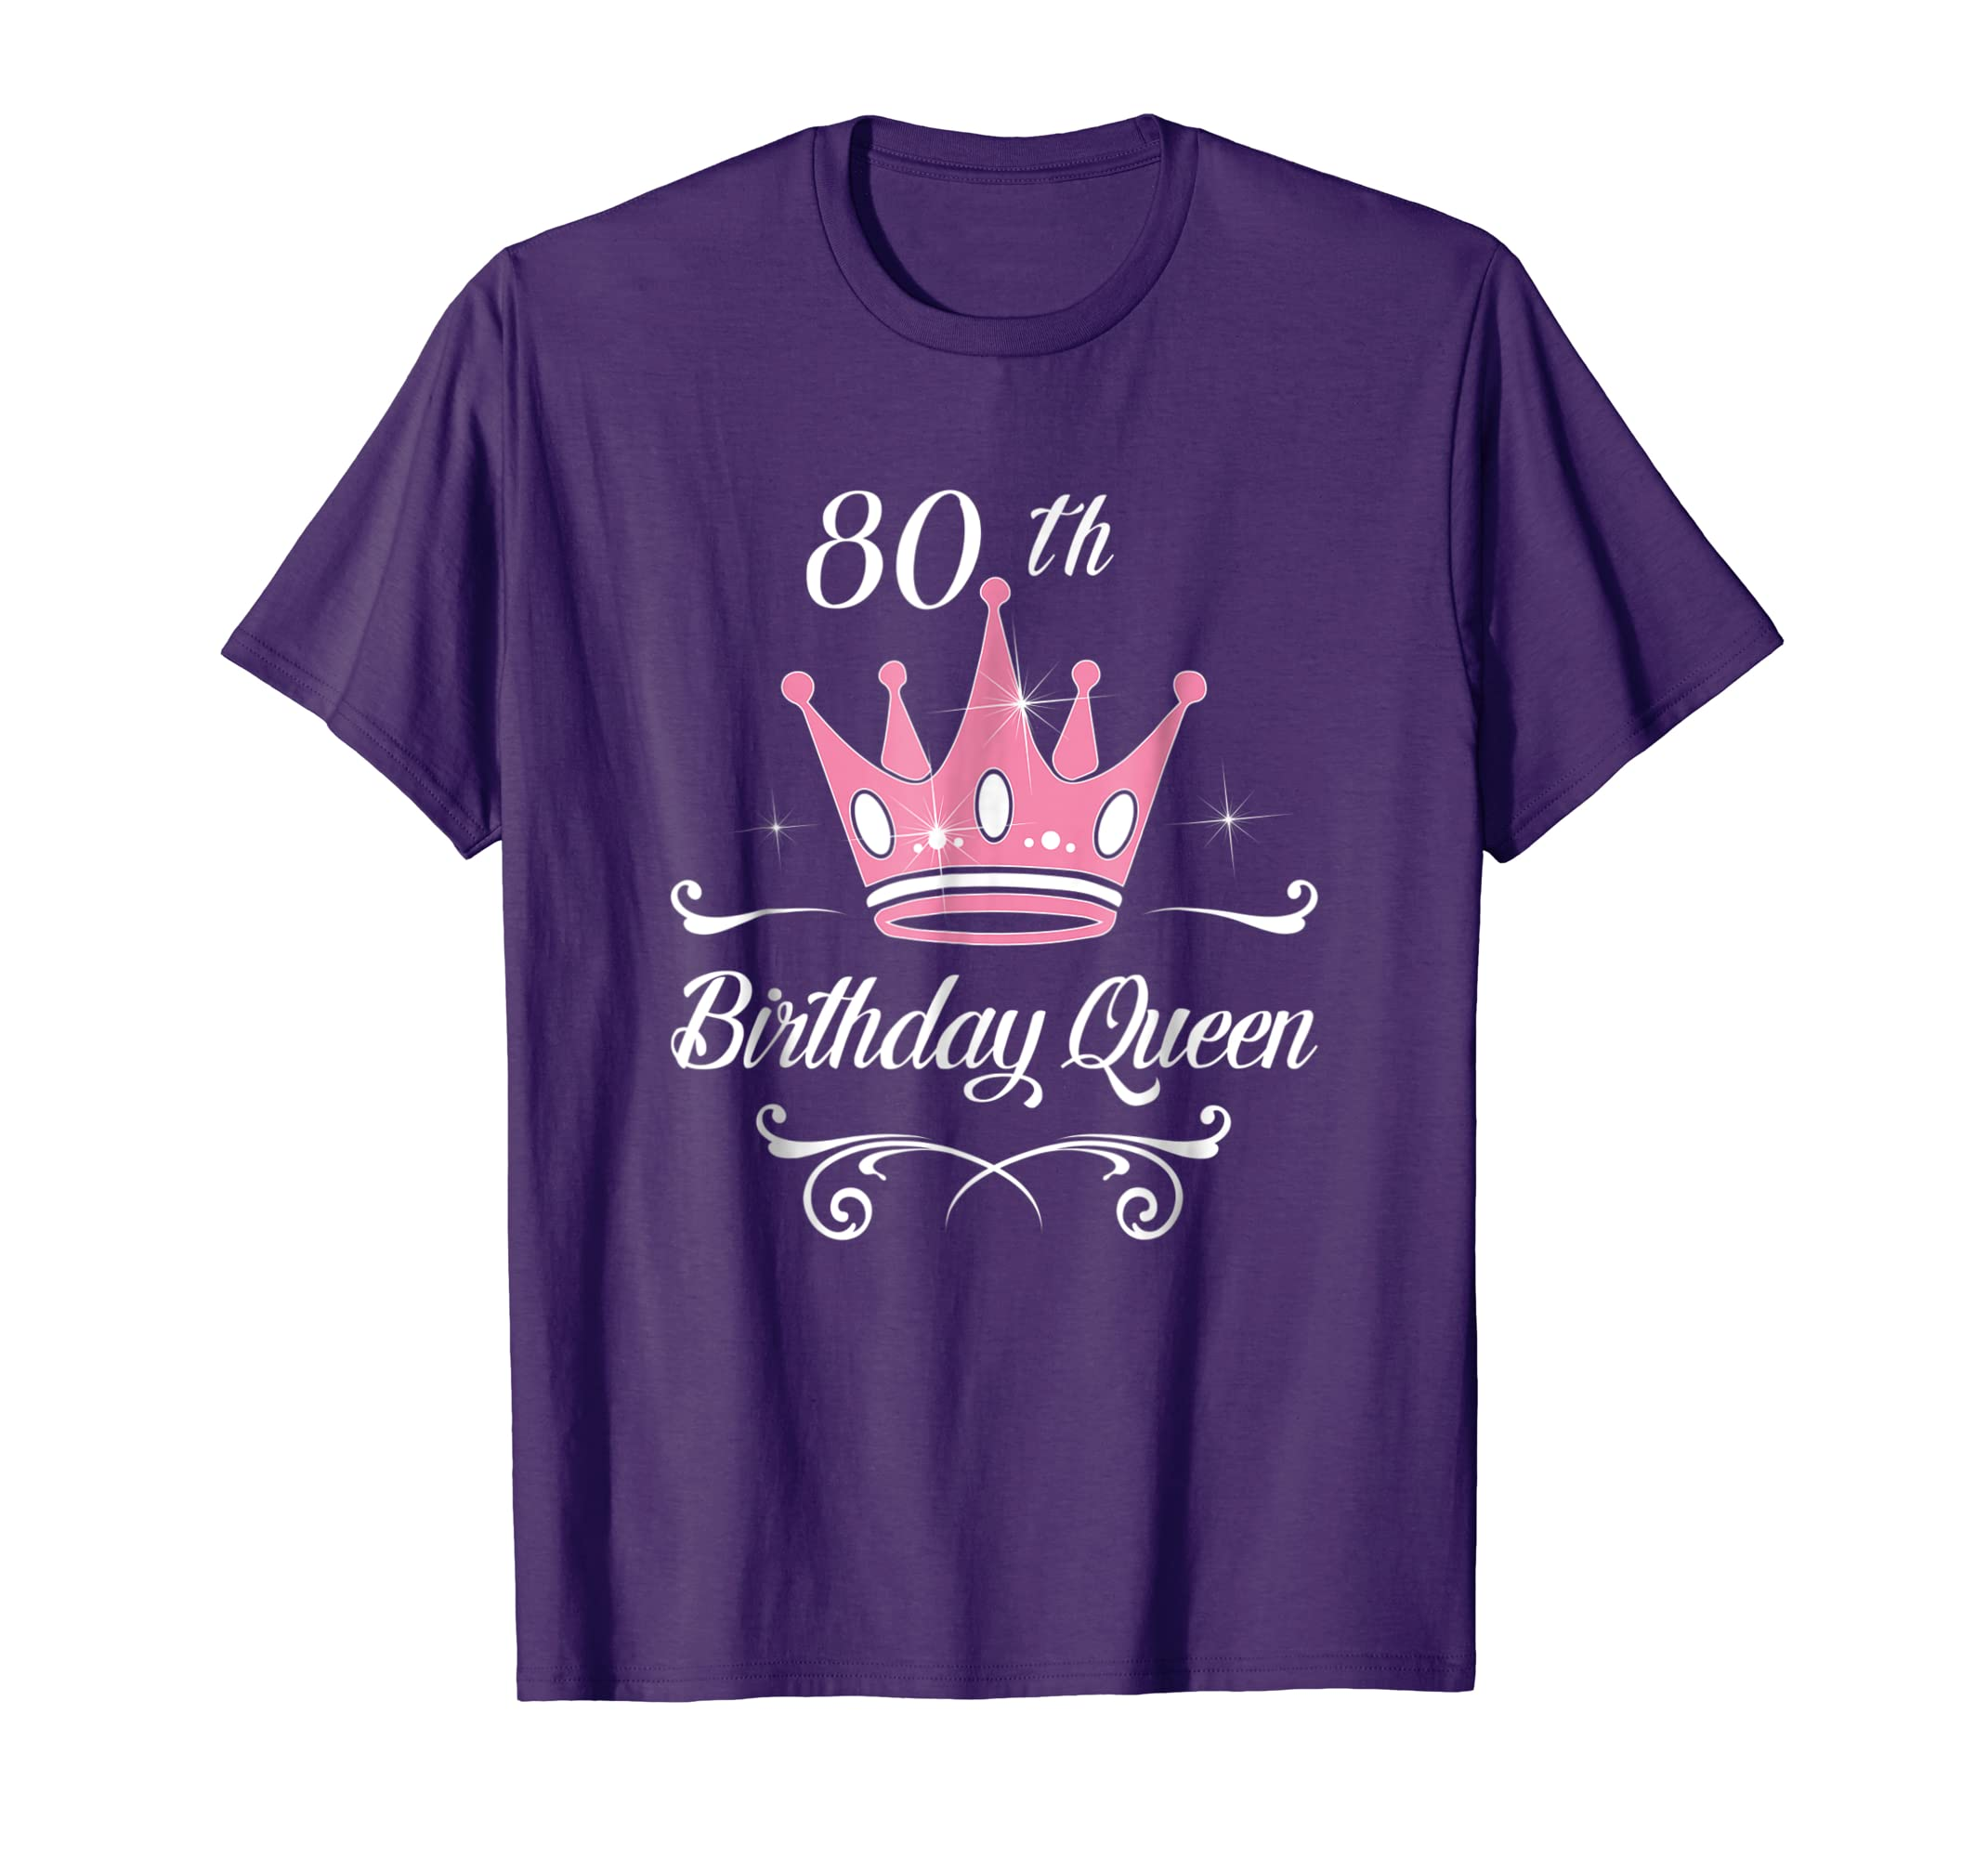 Amazon 80th Birthday Queen Ladies Gifts 80 Years Old Lady Fun Shirt Clothing